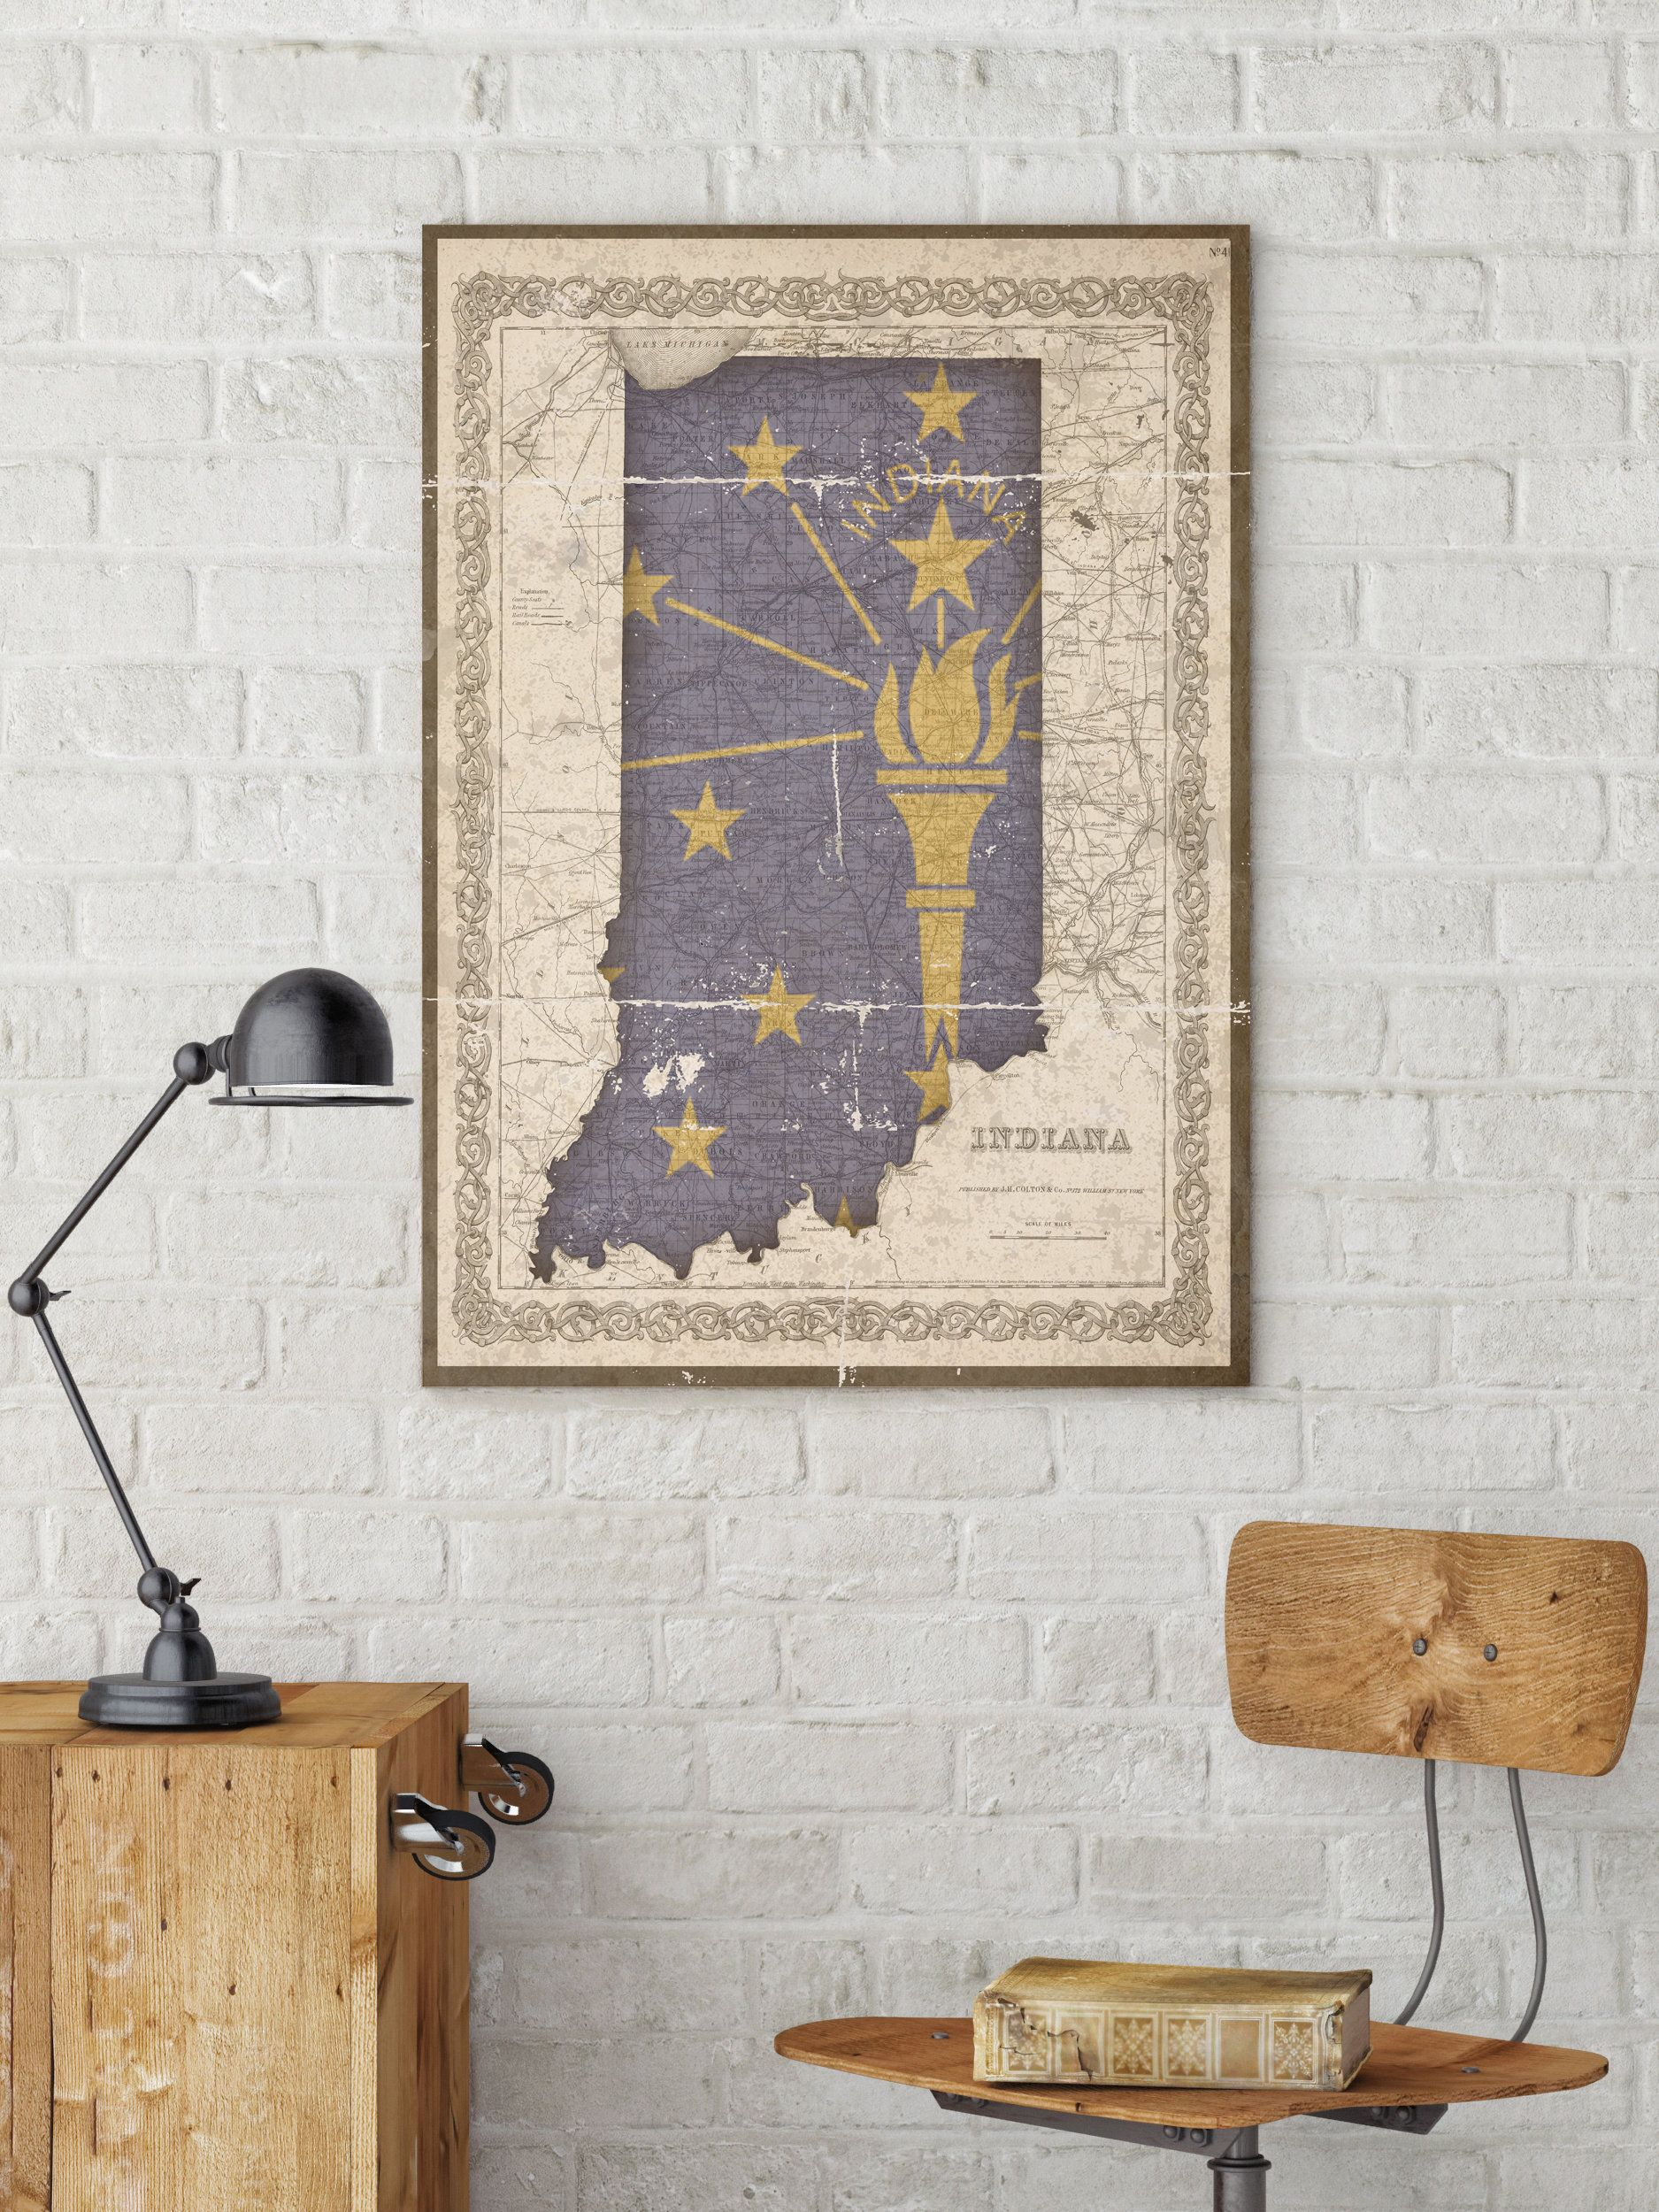 Indiana, Indiana State Map, Indiana Flag, Vintage Flag, Indiana Map on florida wall map, indiana state house map, indiana state world map, indiana state on us map, indiana state political map, indiana state travel map, indiana state road map, california wall map, new orleans wall map, indiana state township map, indiana state usa map, north carolina wall map,